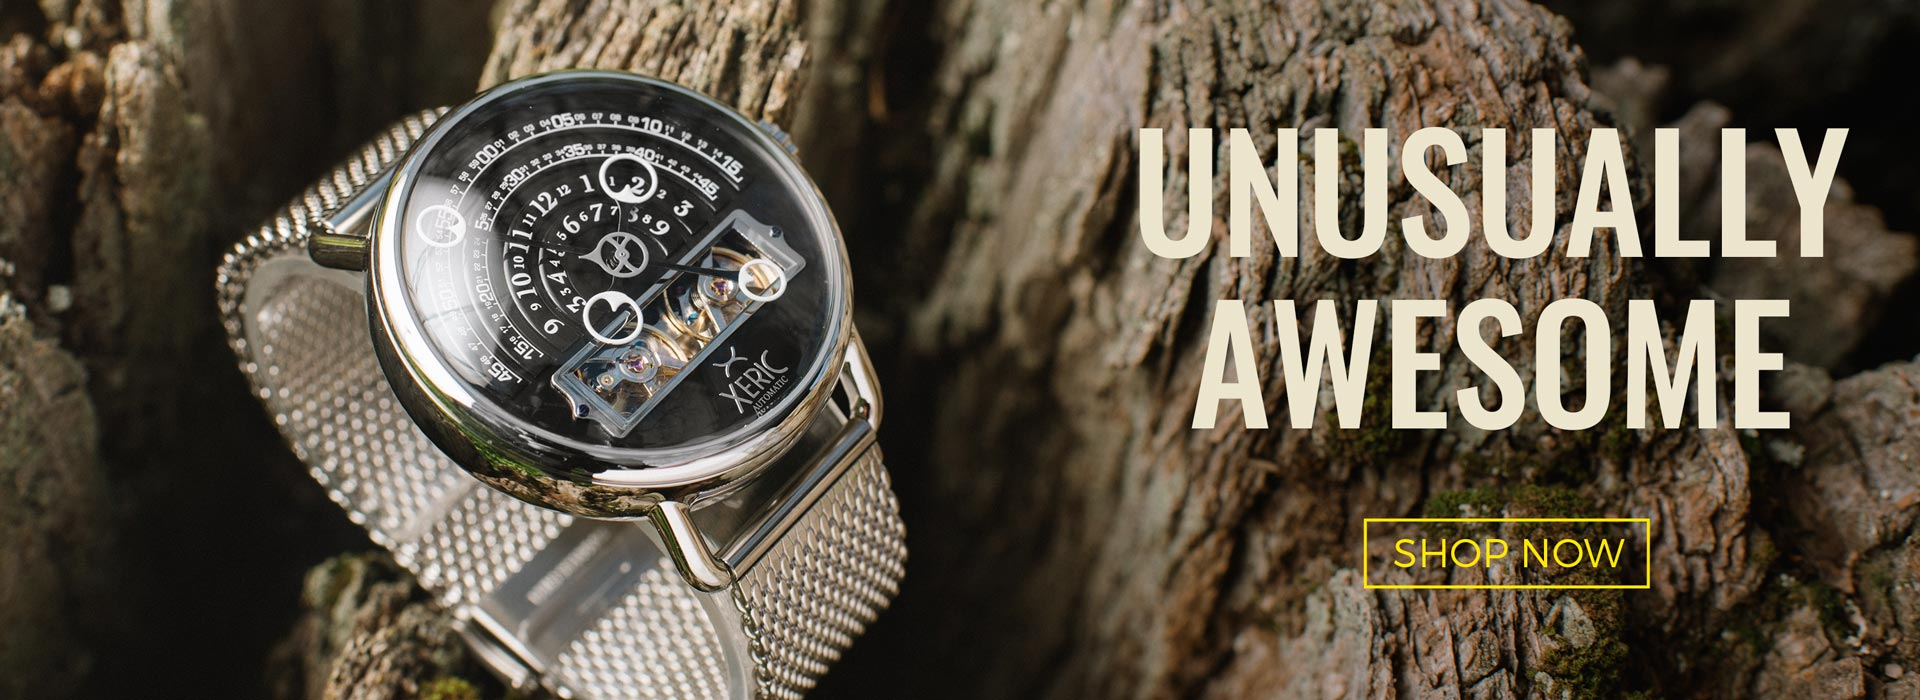 xeric halograph unusual watches